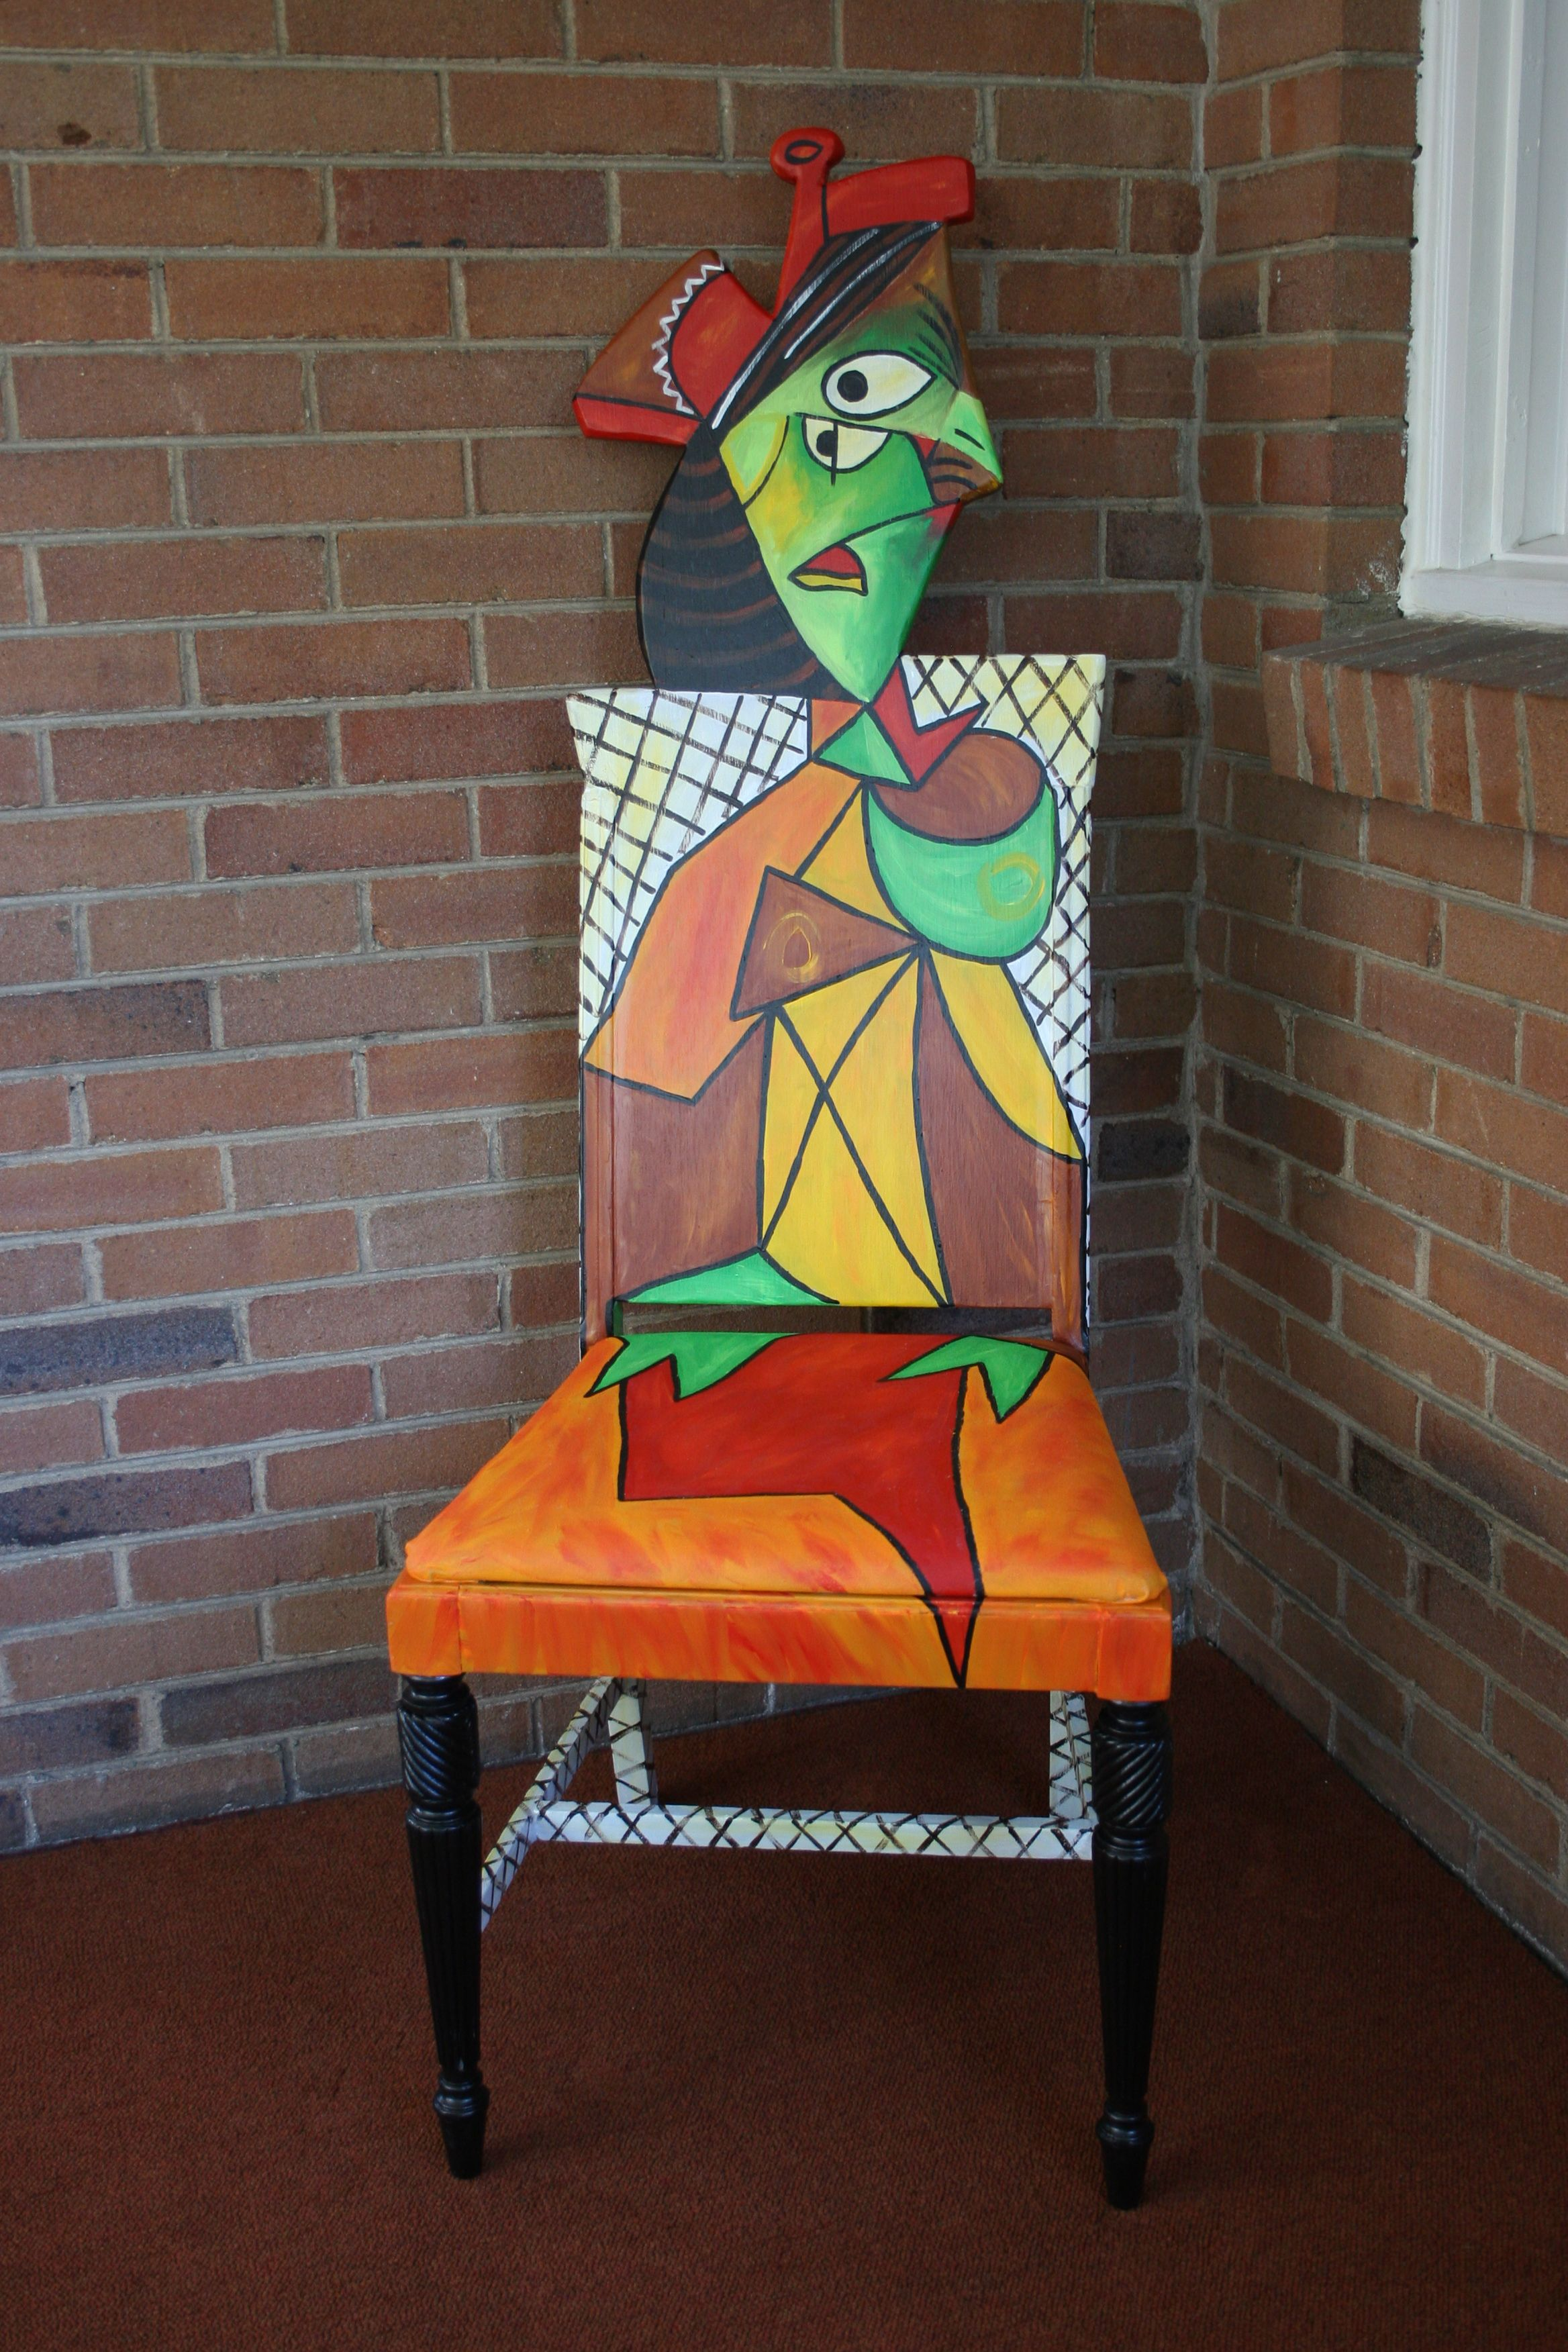 picasso style handpainted chair by artist todd fendos. Black Bedroom Furniture Sets. Home Design Ideas